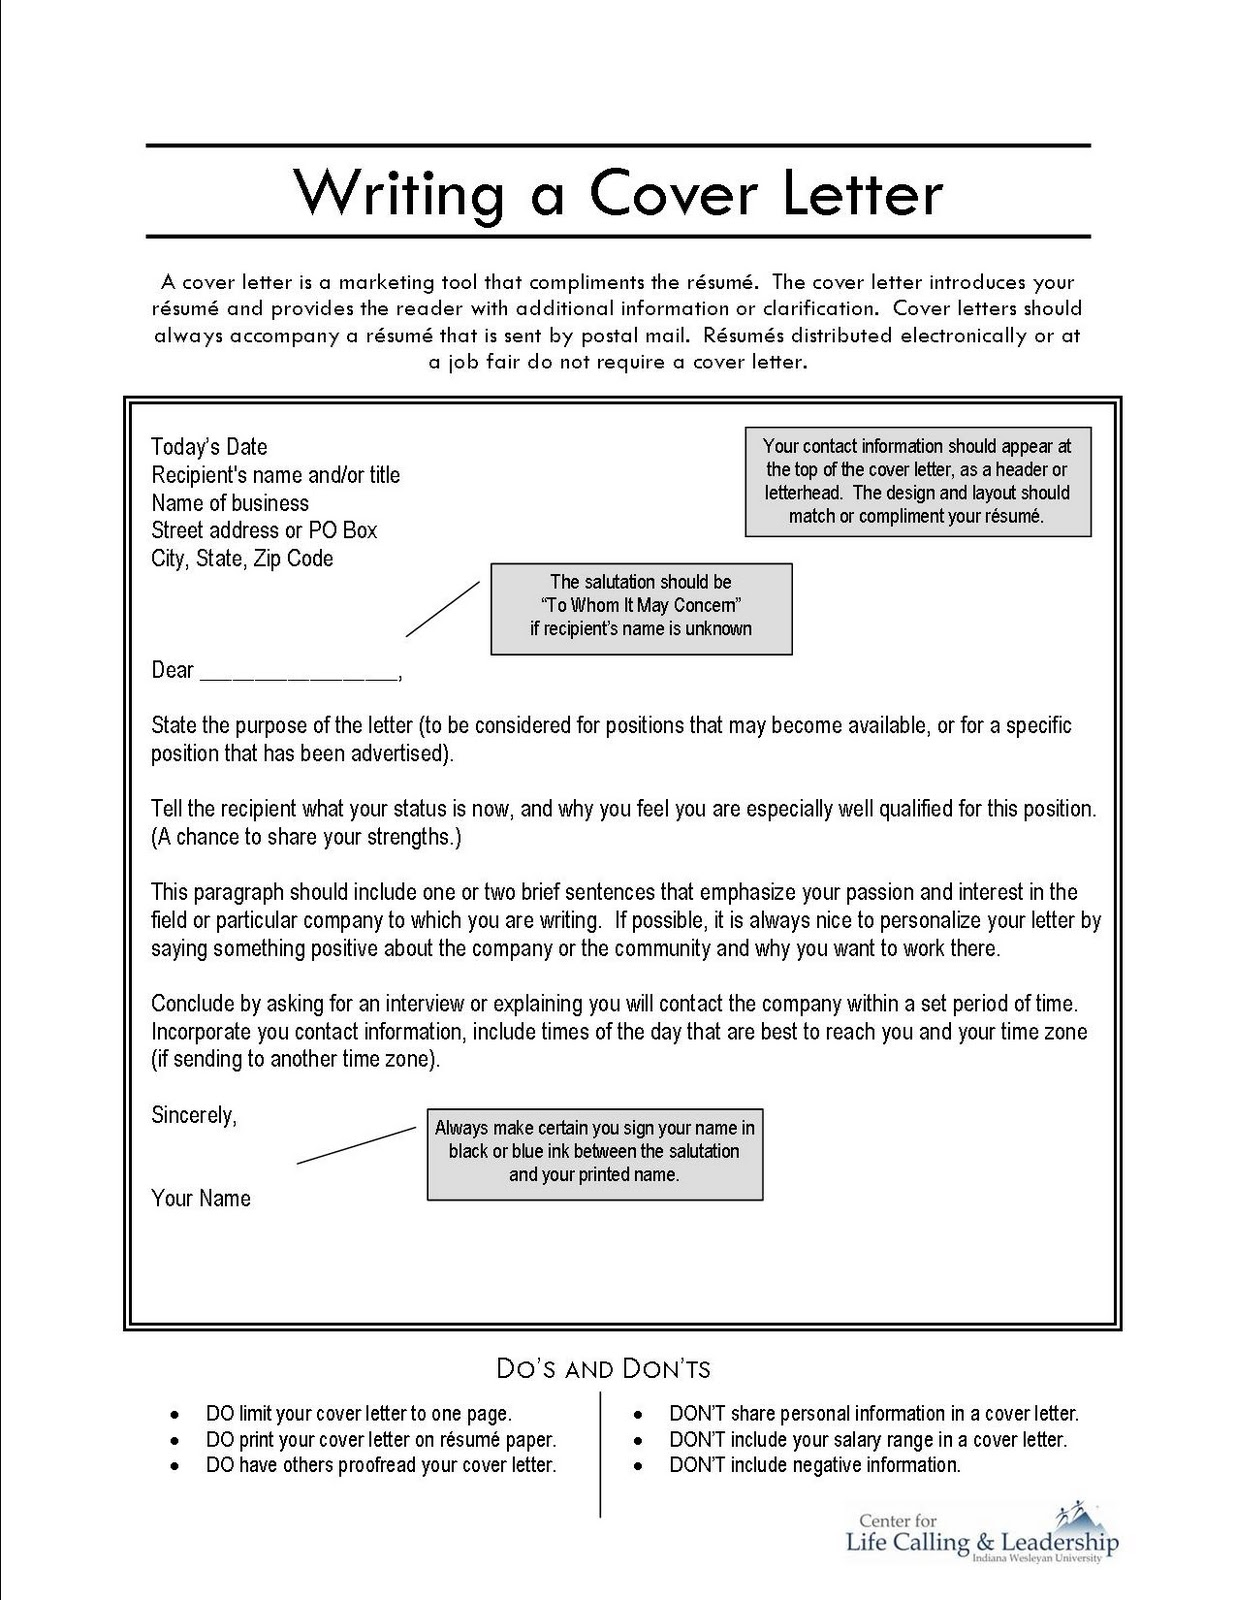 cover letters resume writing cover letter resume meganwest writing cover letter resume